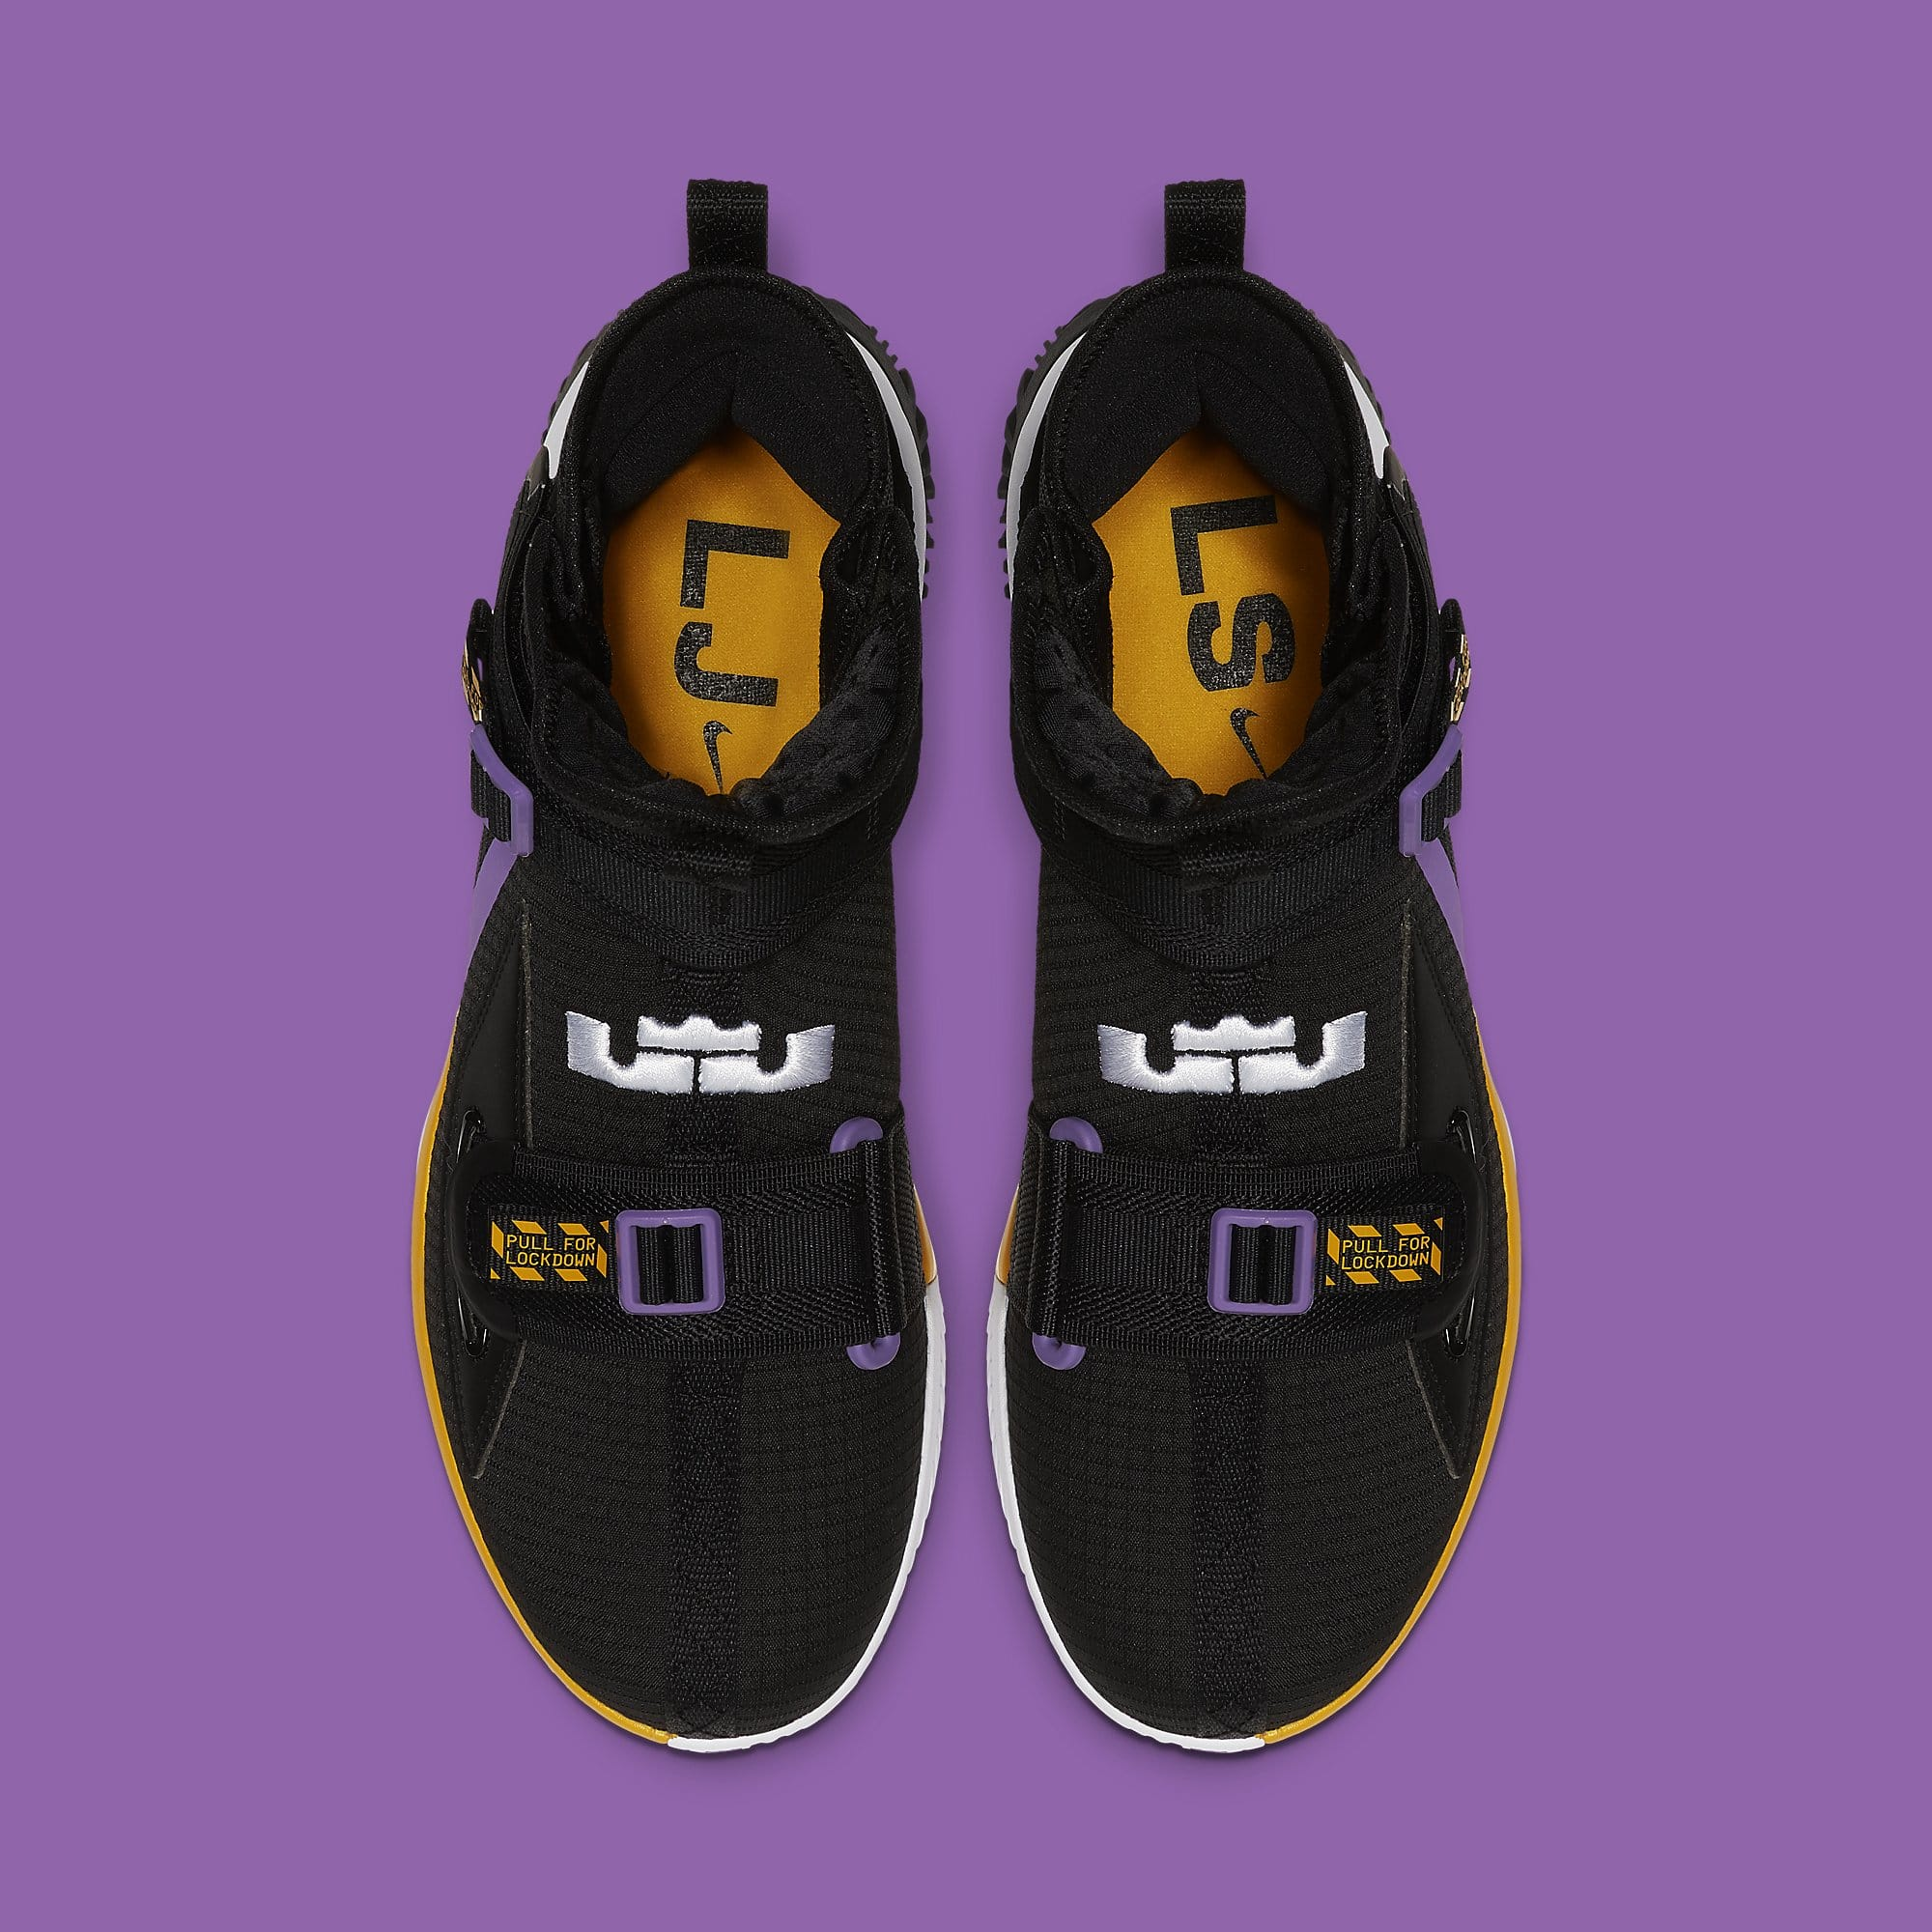 wholesale dealer 12c24 7c88f Nike LeBron Soldier 13 Lakers Release Date AR4228-004 Pair   Sole Collector